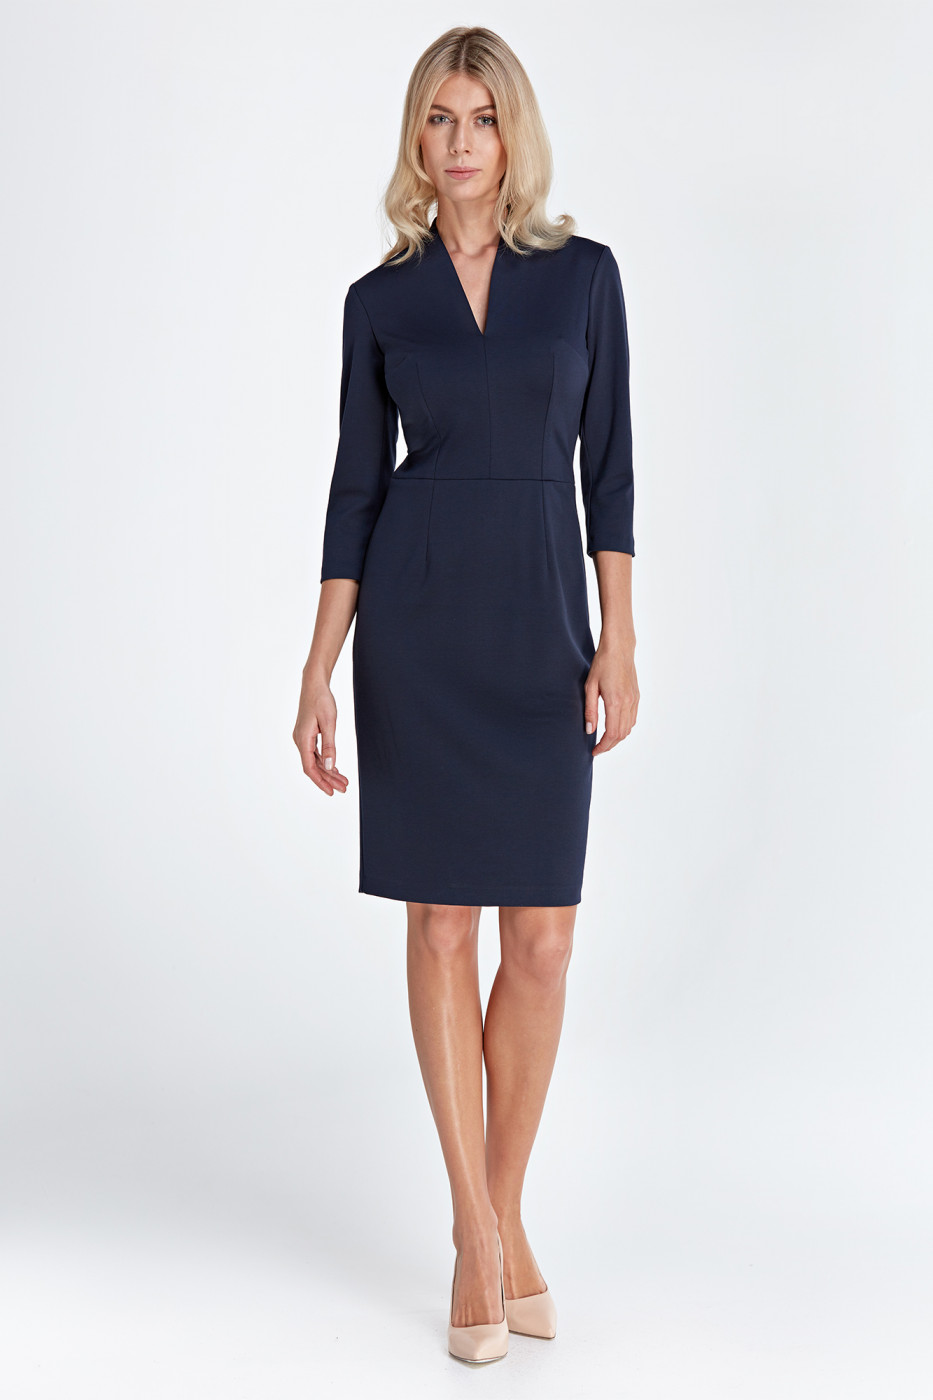 Colett Woman's Dress Cs01 Navy Blue